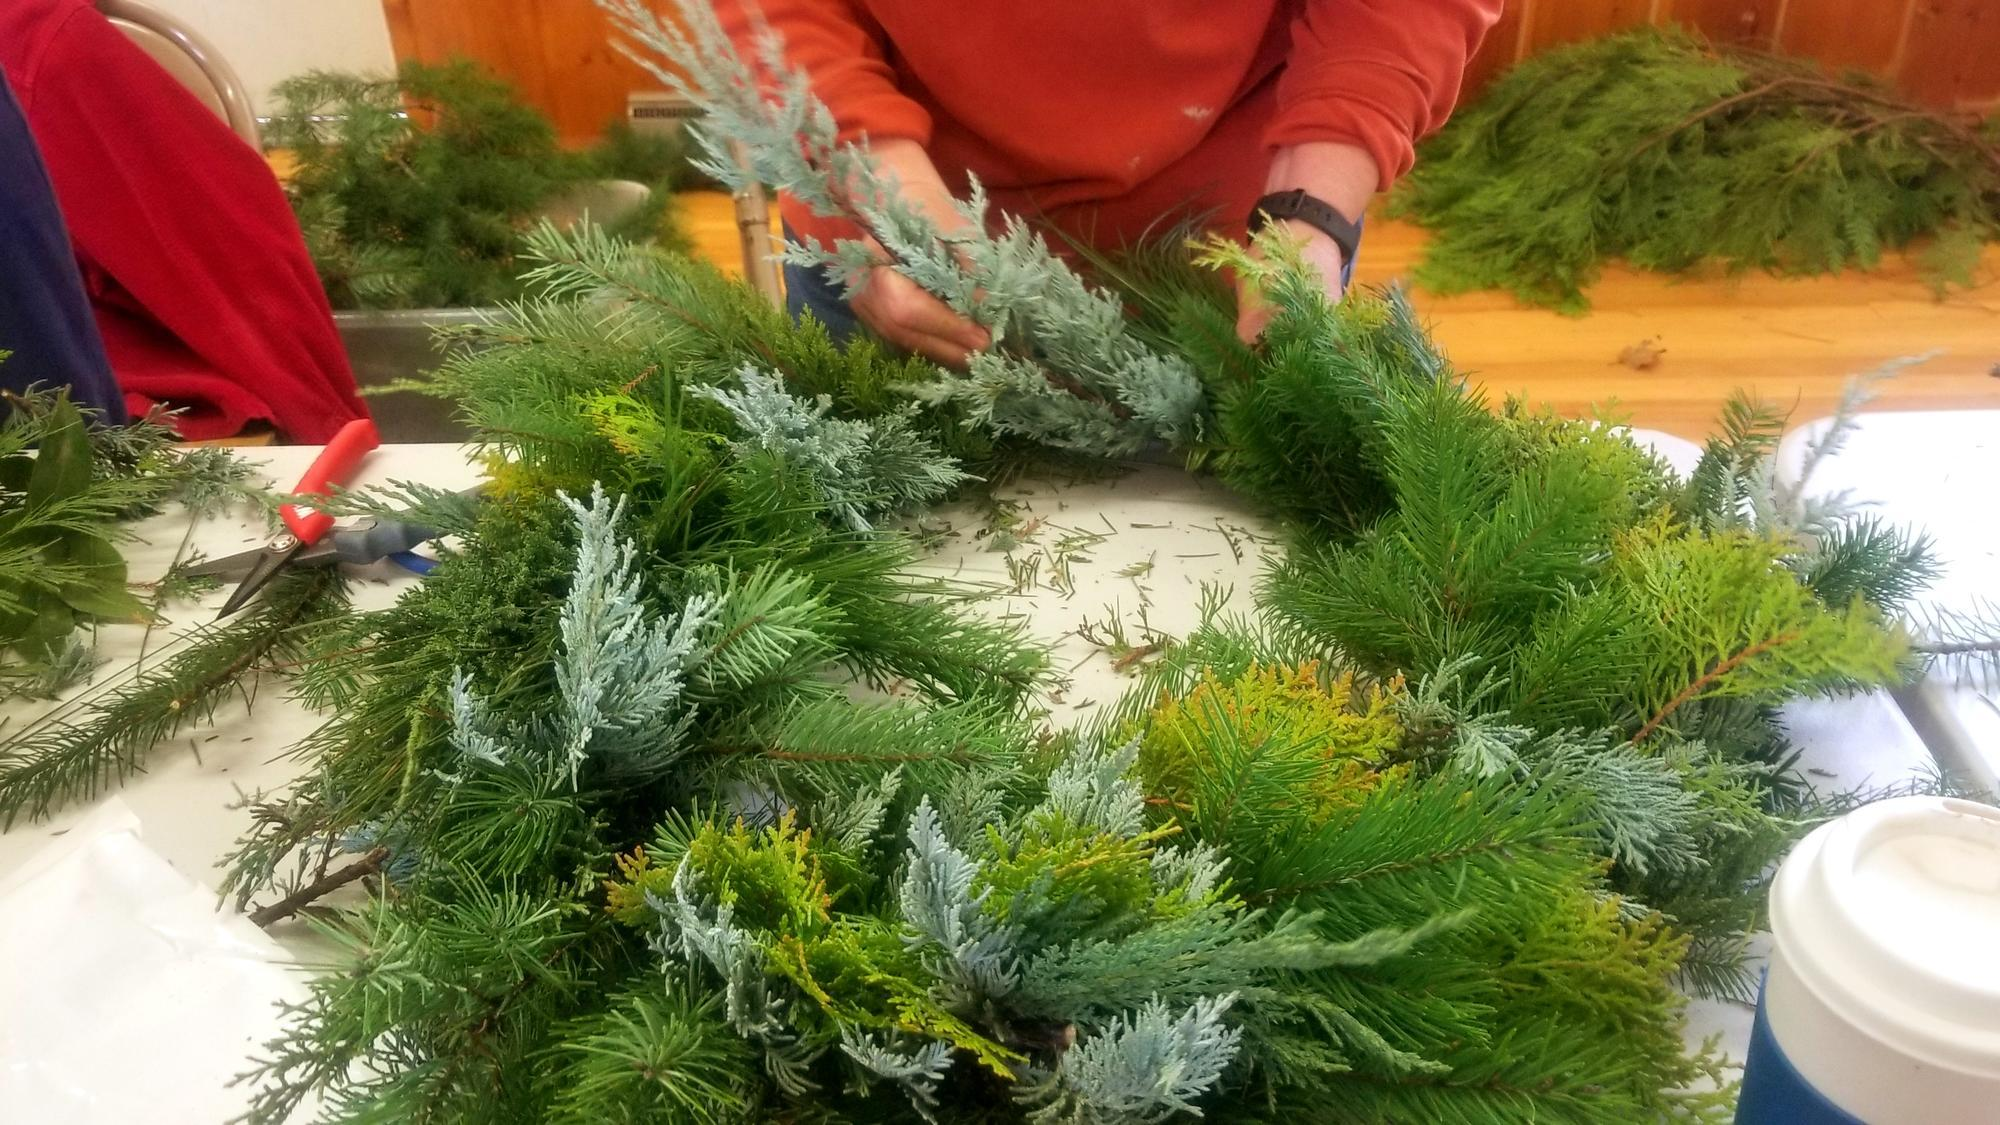 Harvesting Evergreen Boughs From Your Woodland Osu Extension Service